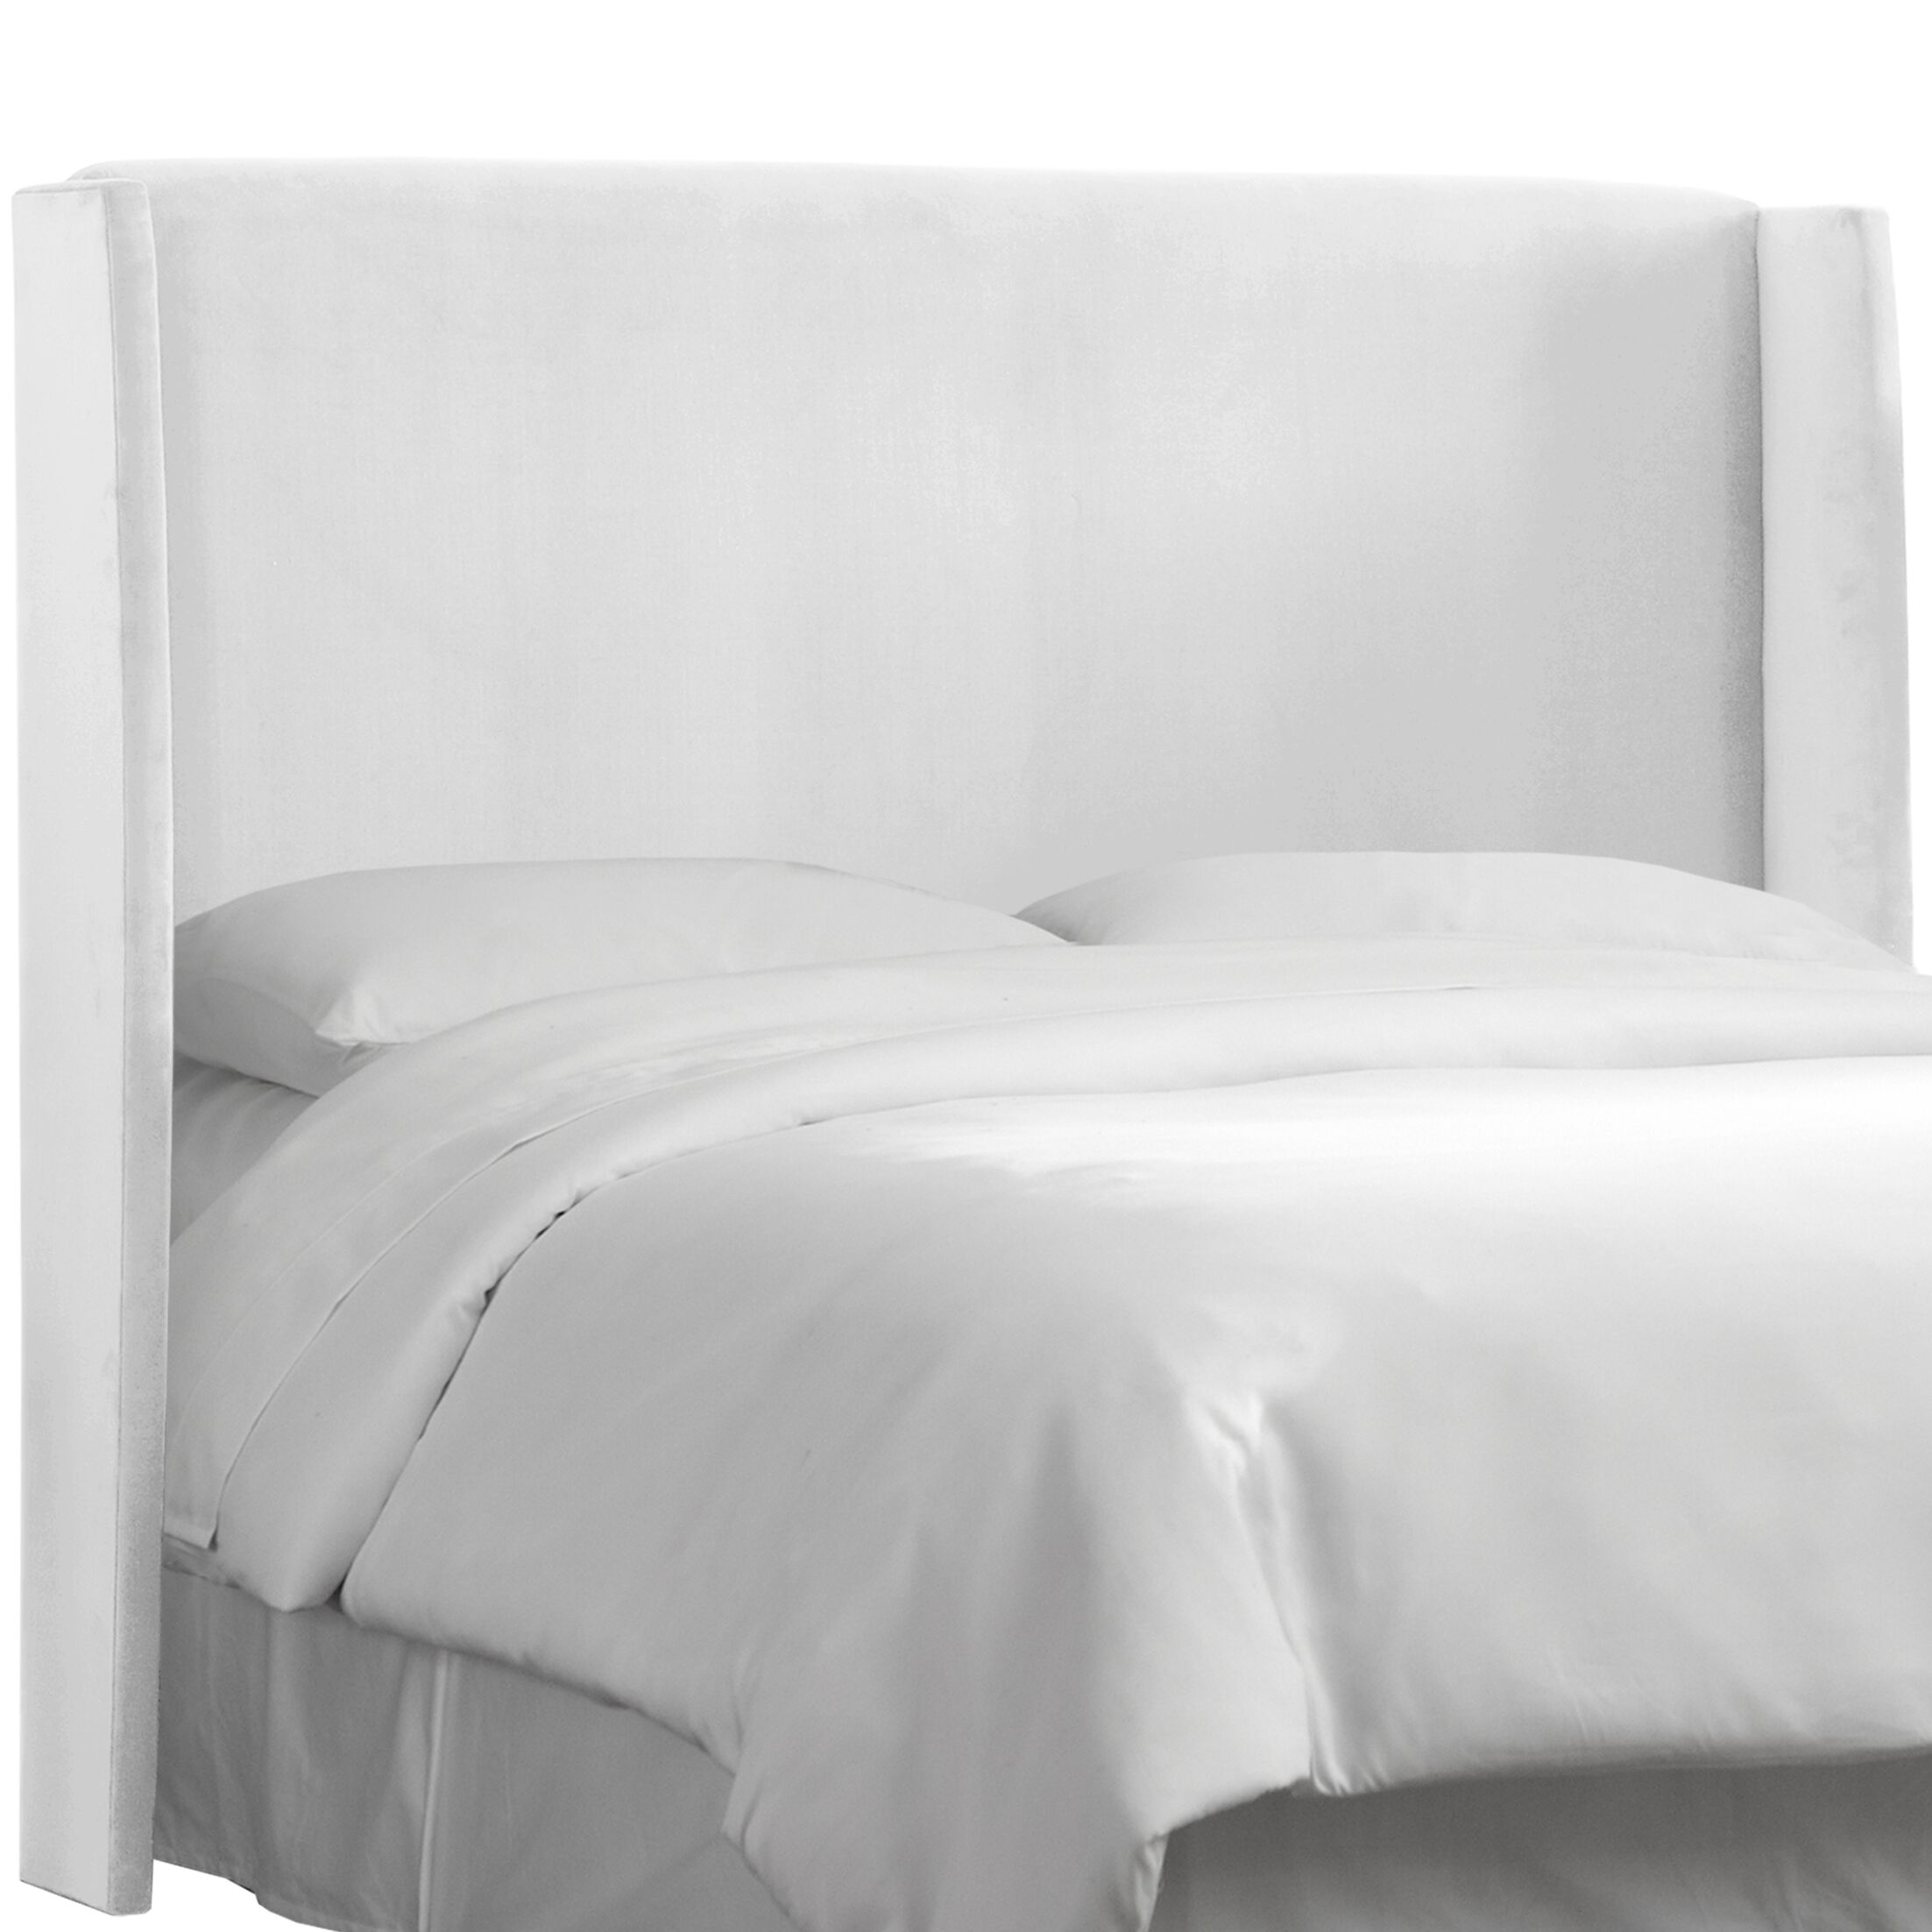 Wingback Upholstered Headboard Size: King, Color: White